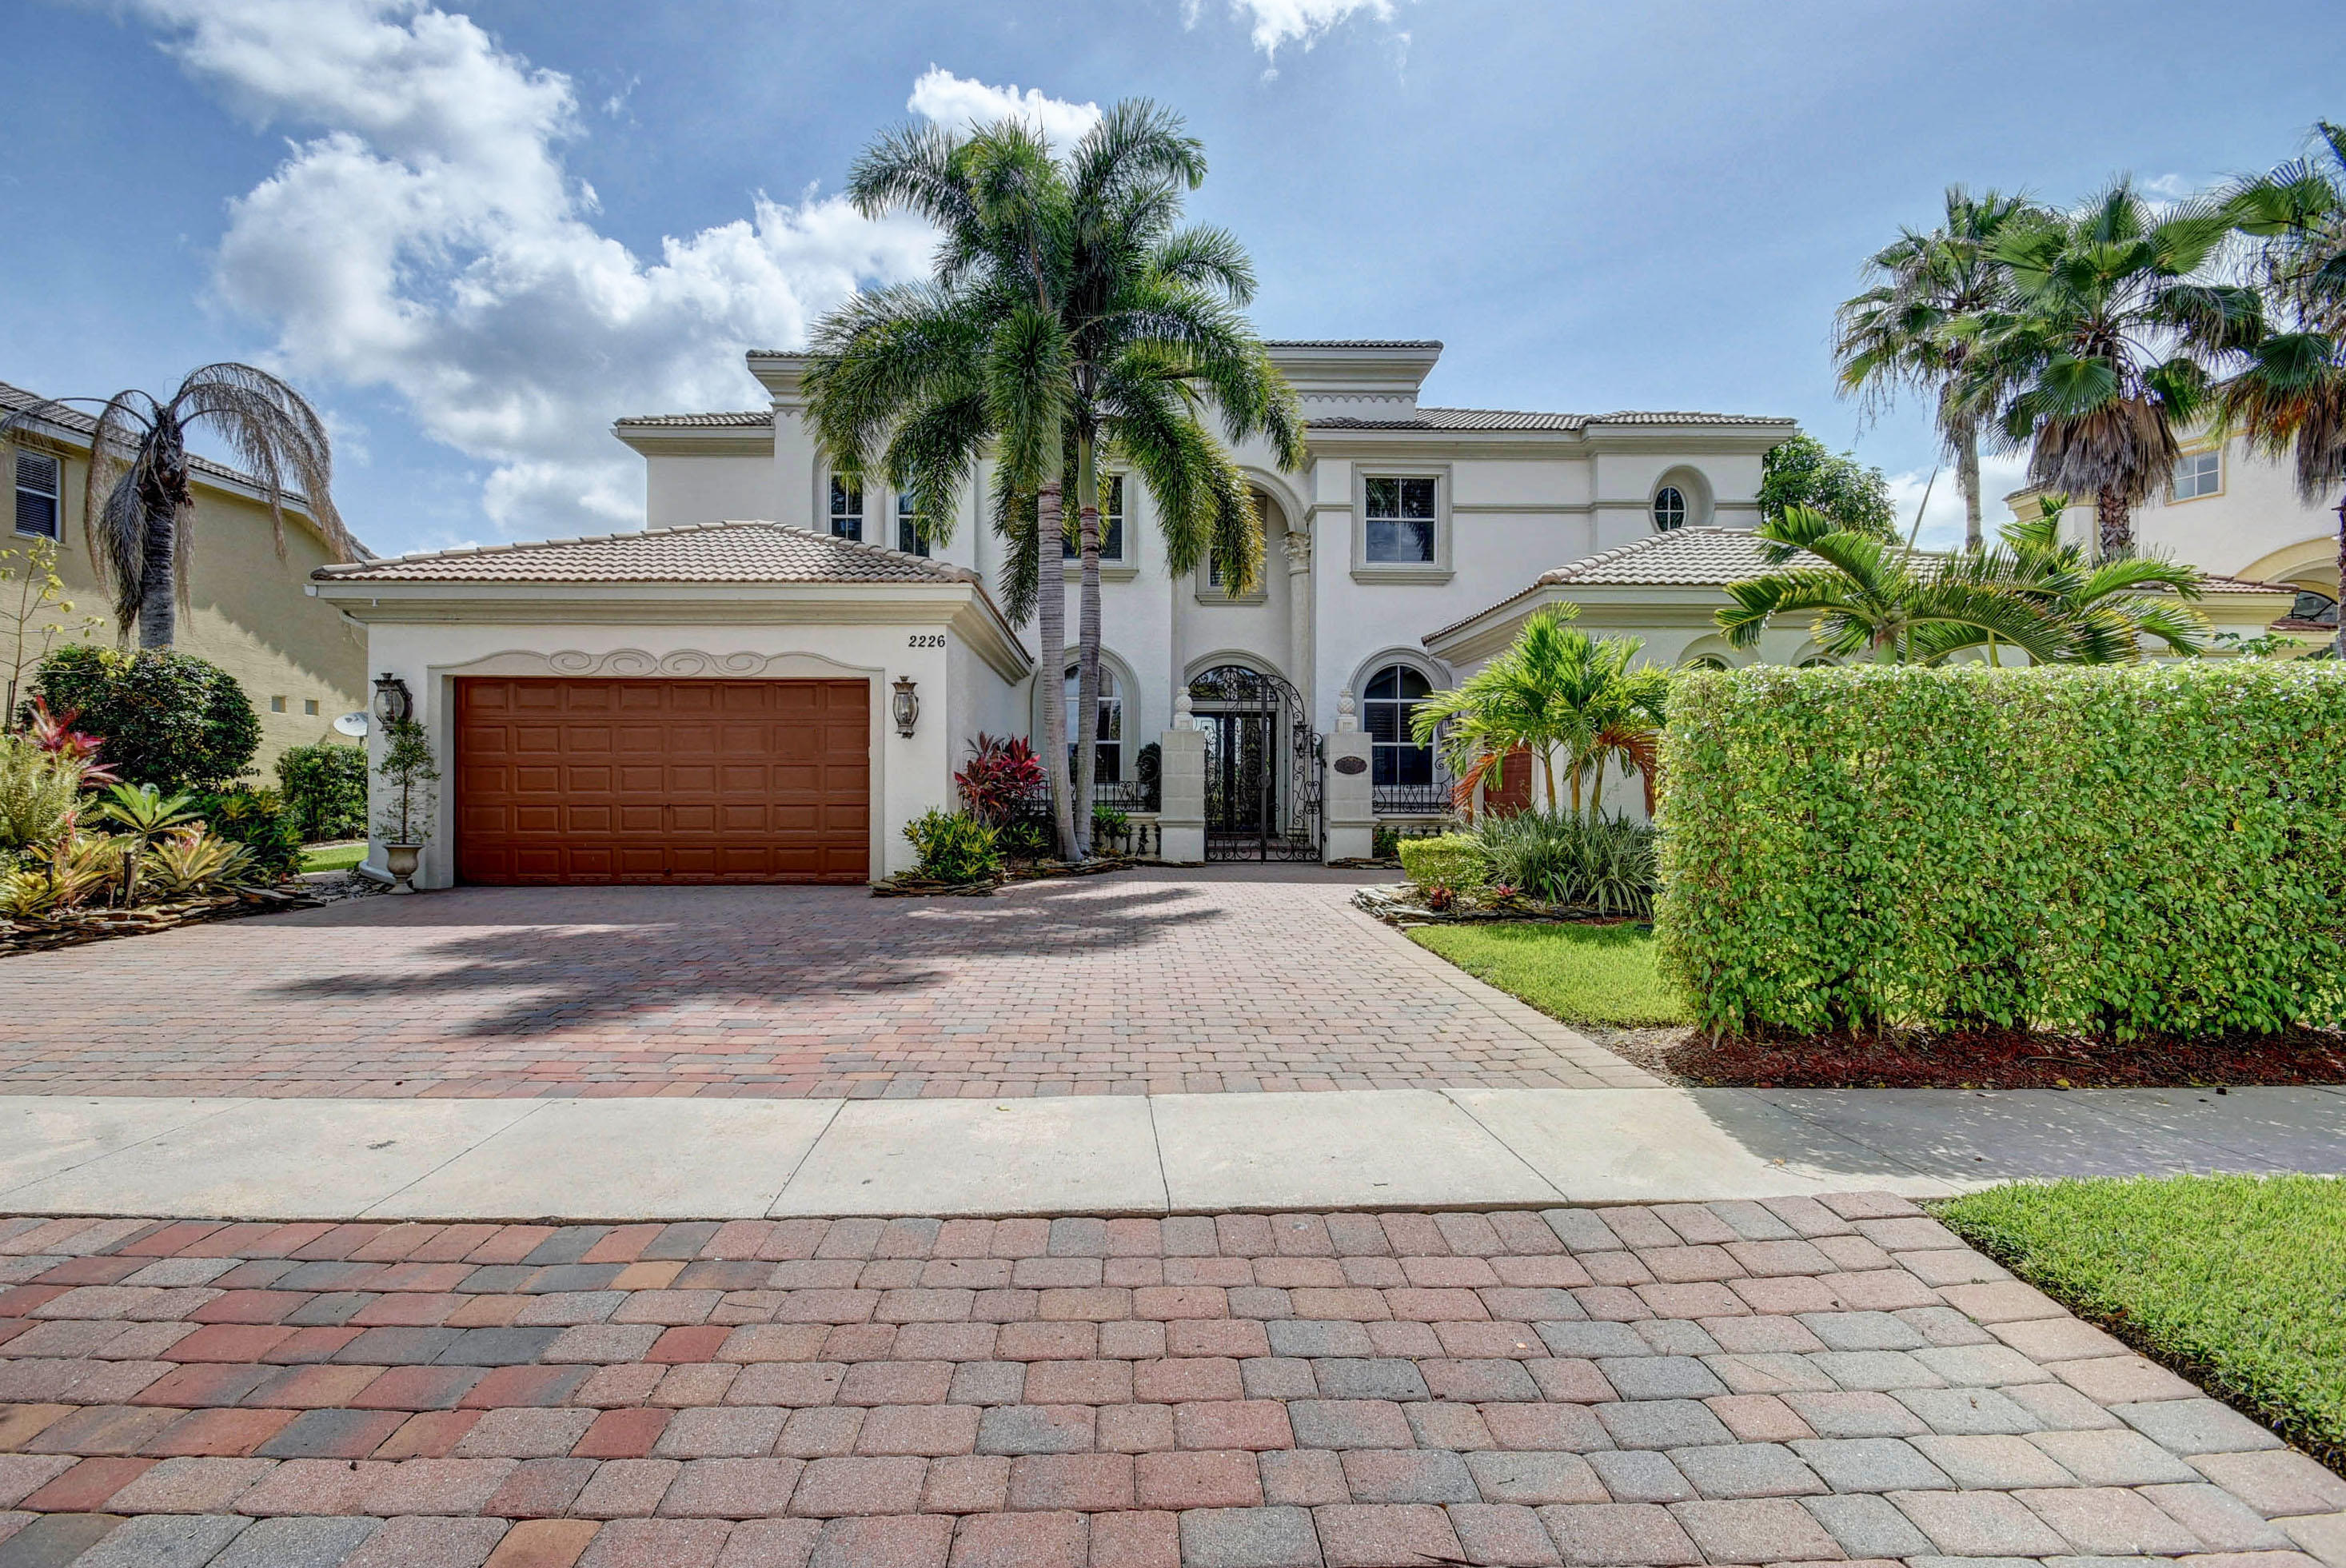 Home for sale in Olympia Wellington Florida